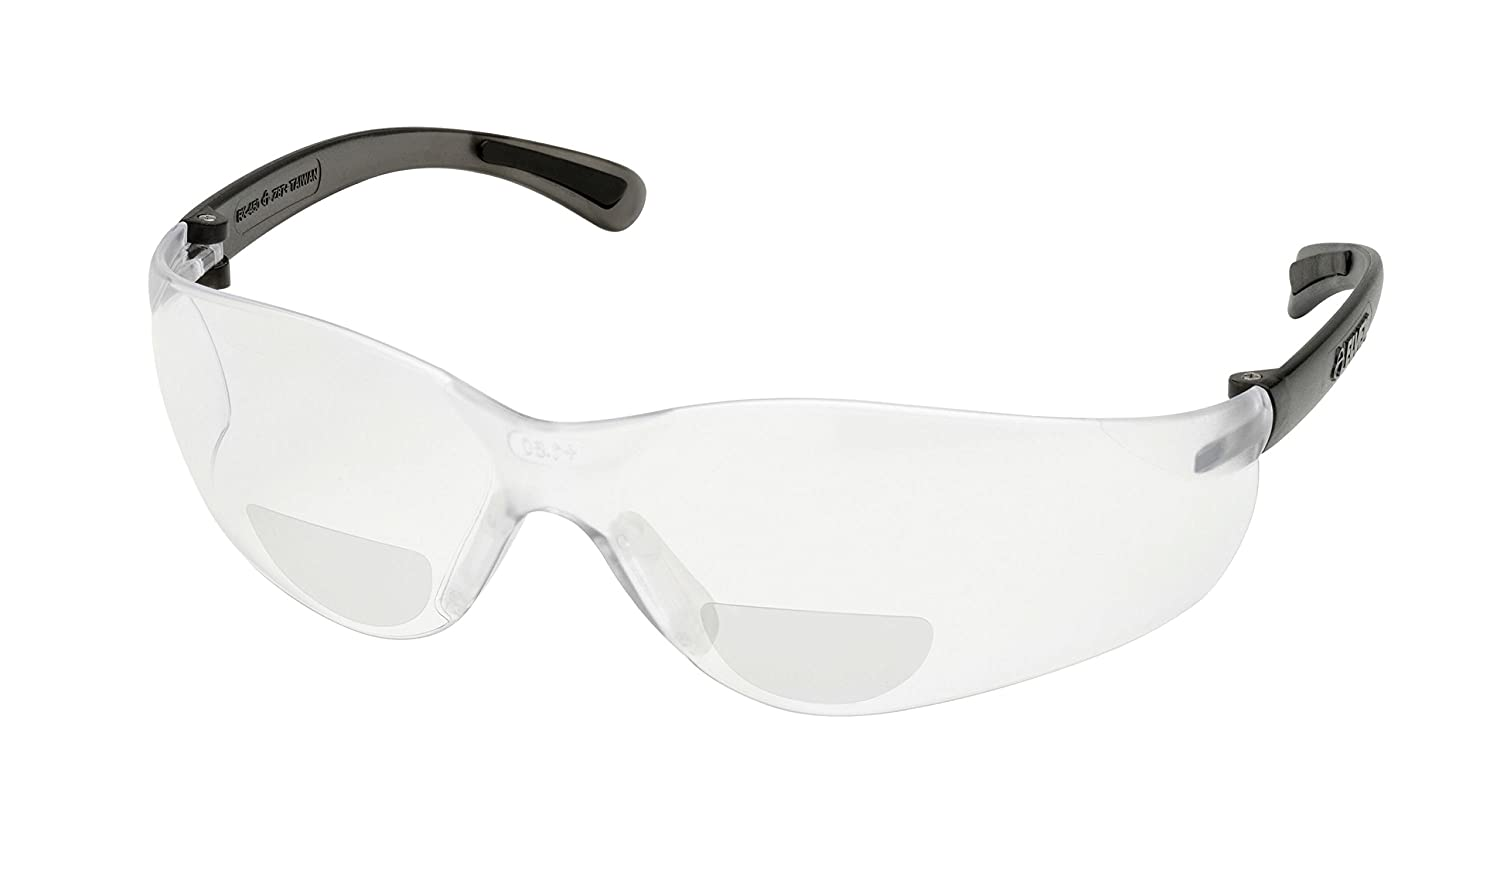 UVEX PHEOS 9192-225 CLEAR SAFETY GLASSES SPECTACLES BUY 2 GET 1 OFFER INSIDE